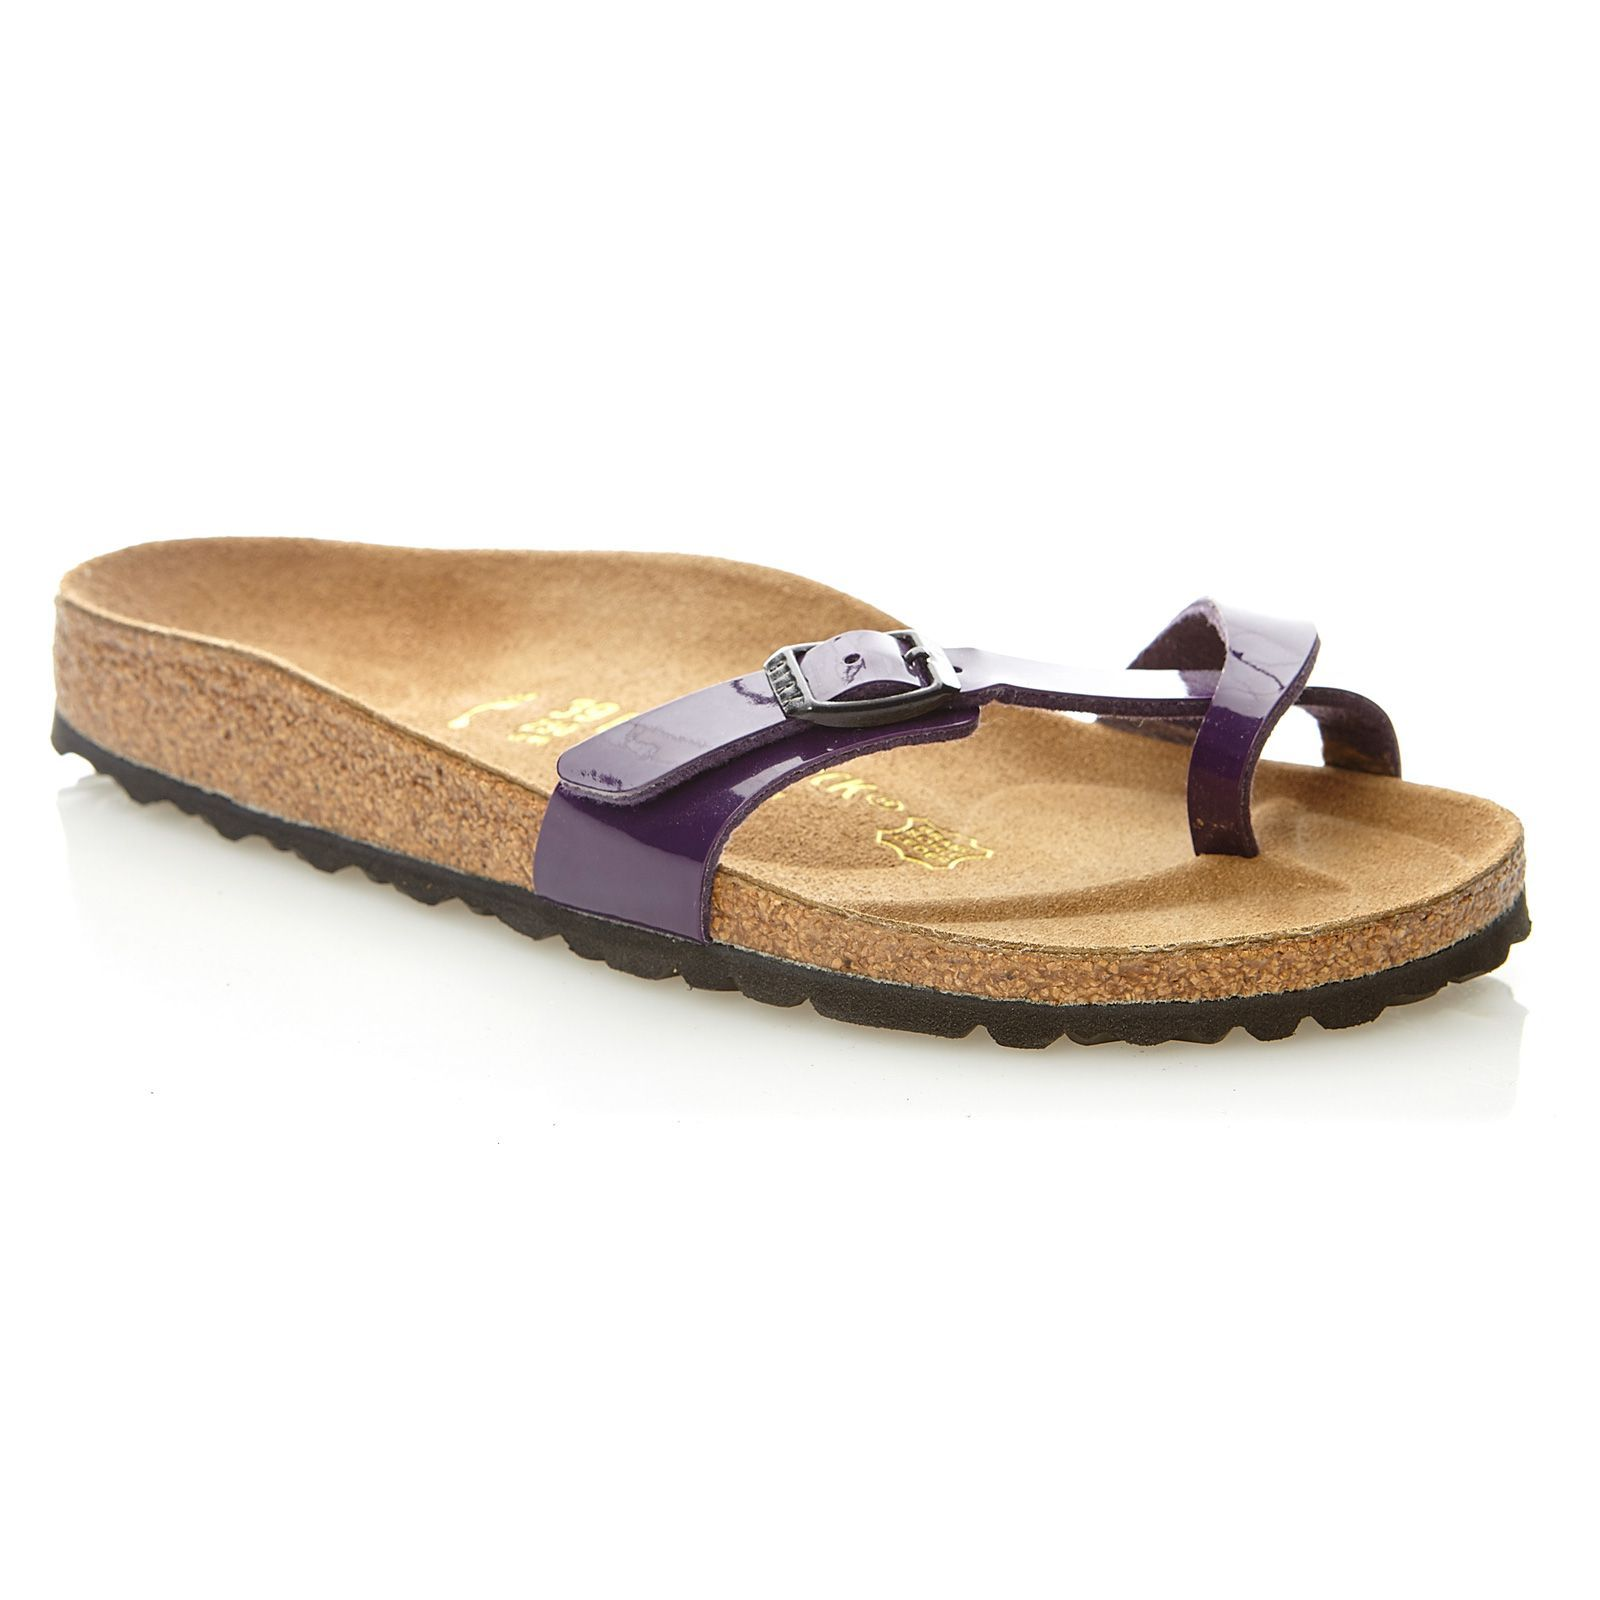 09e959e9df0 Birkenstock Arizona Taupe Comfort Womens Shoes